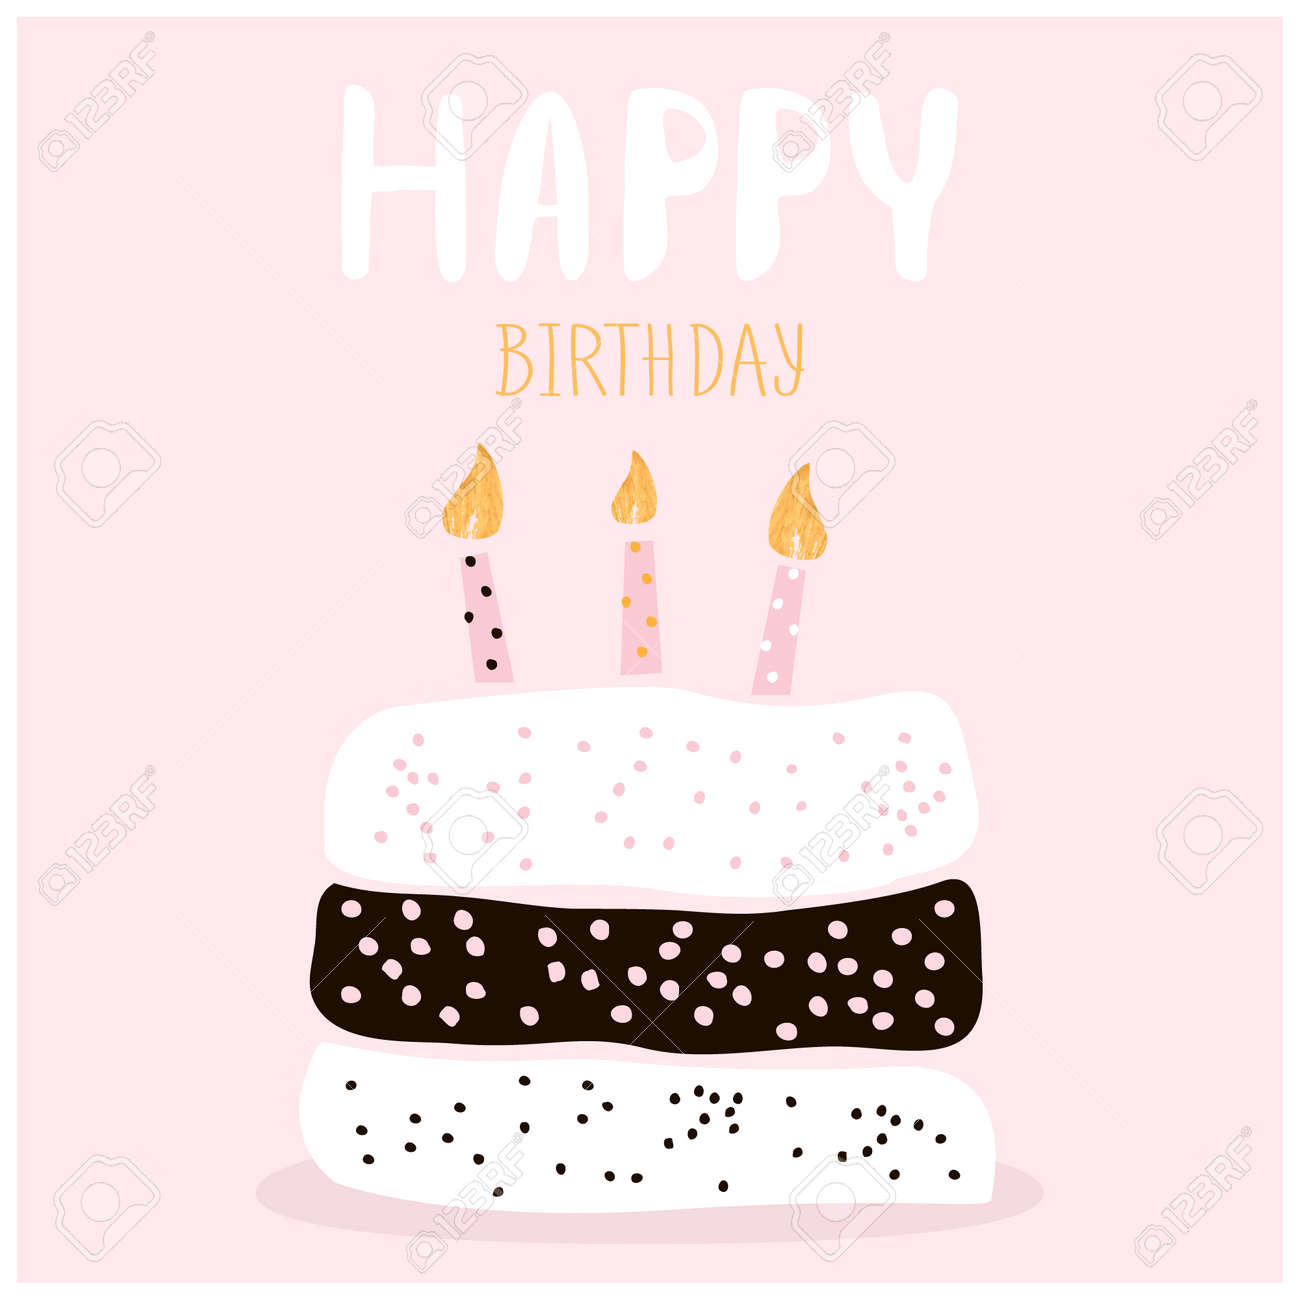 cute cake with happy birthday wish. greeting card template. creative